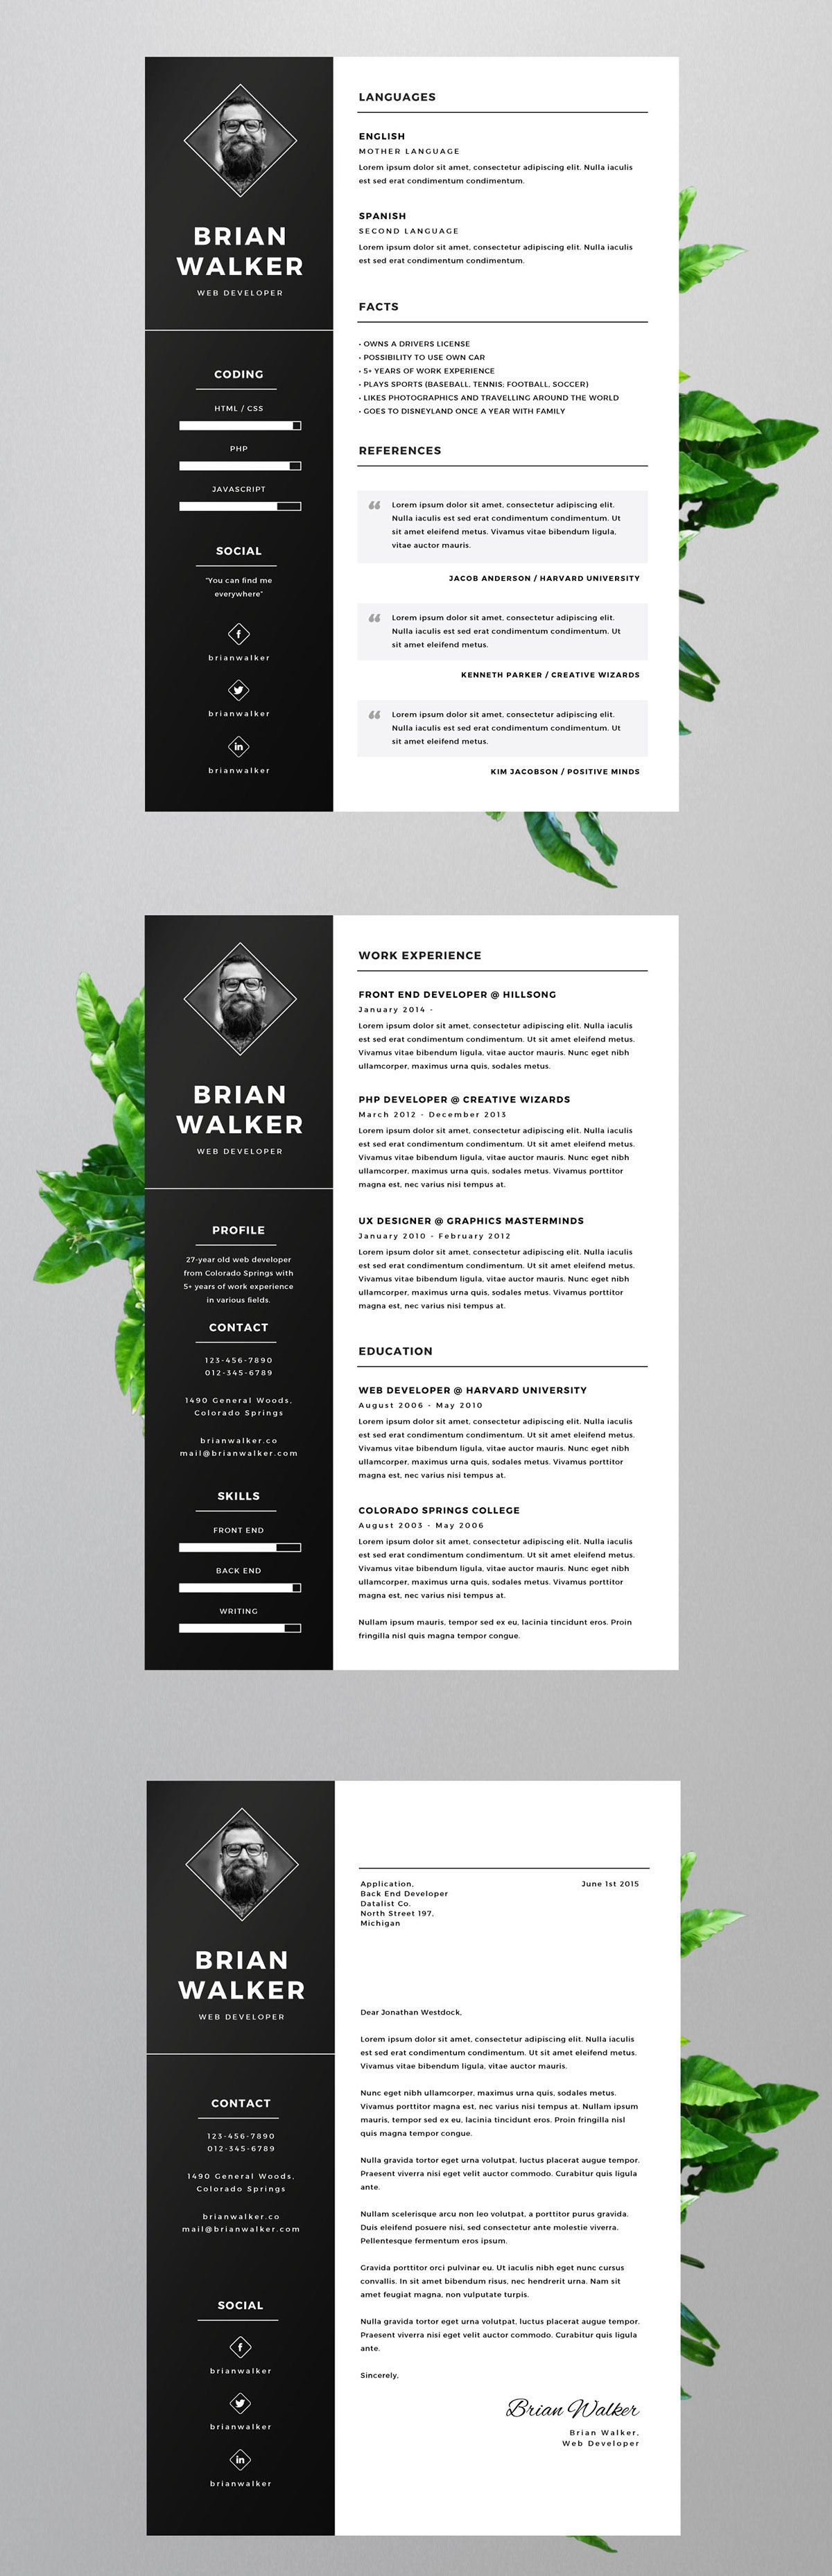 free resume template for microsoft word adobe photoshop and adobe illustrator free for personal - Photoshop Resume Template